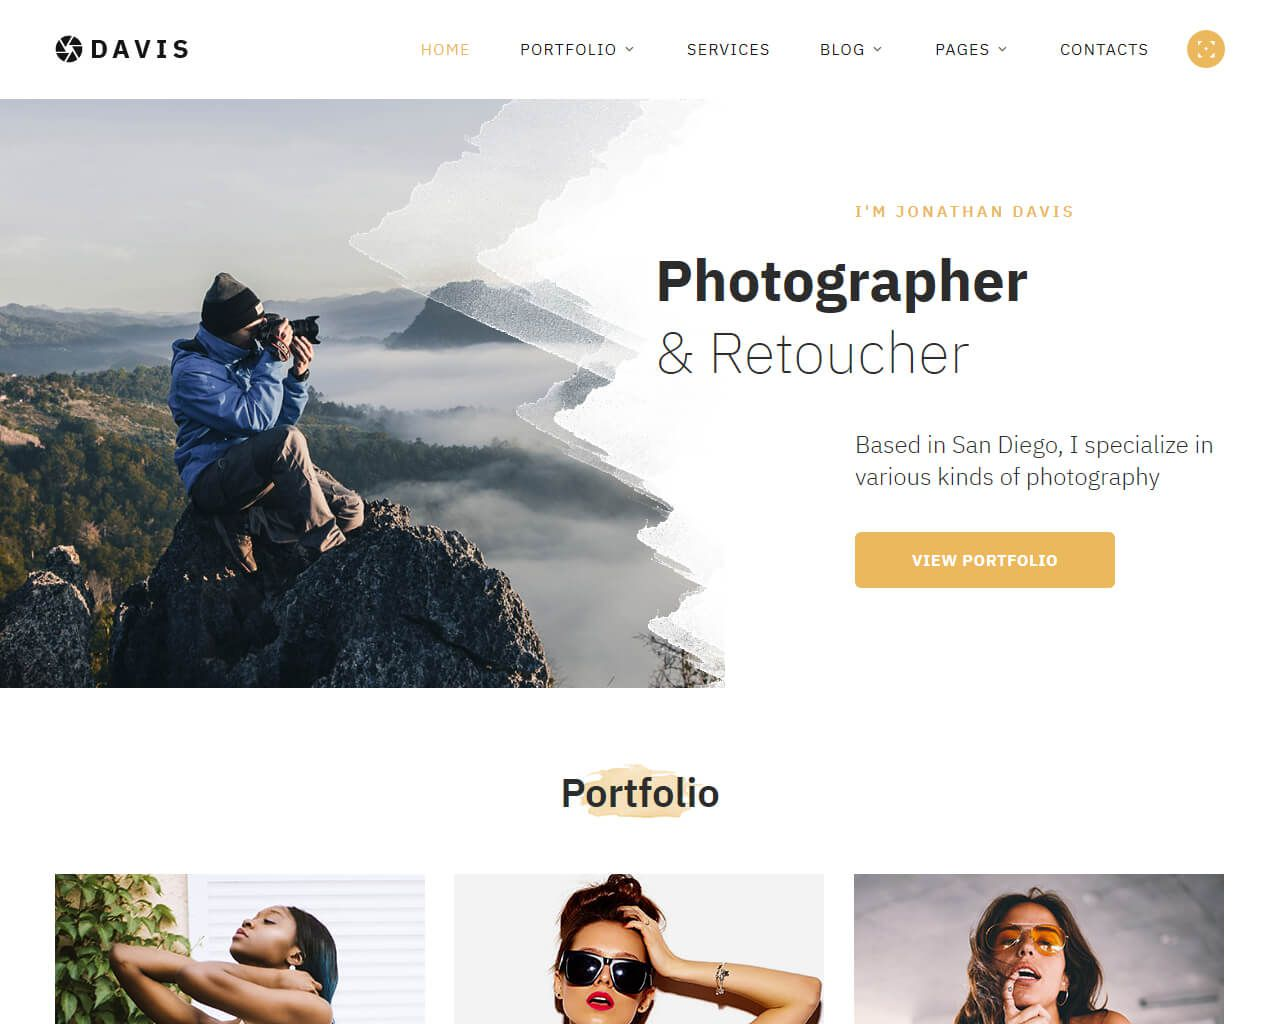 003 Unusual Website Template For Photographer Inspiration  Photographers Free Responsive Photography Php BestFull